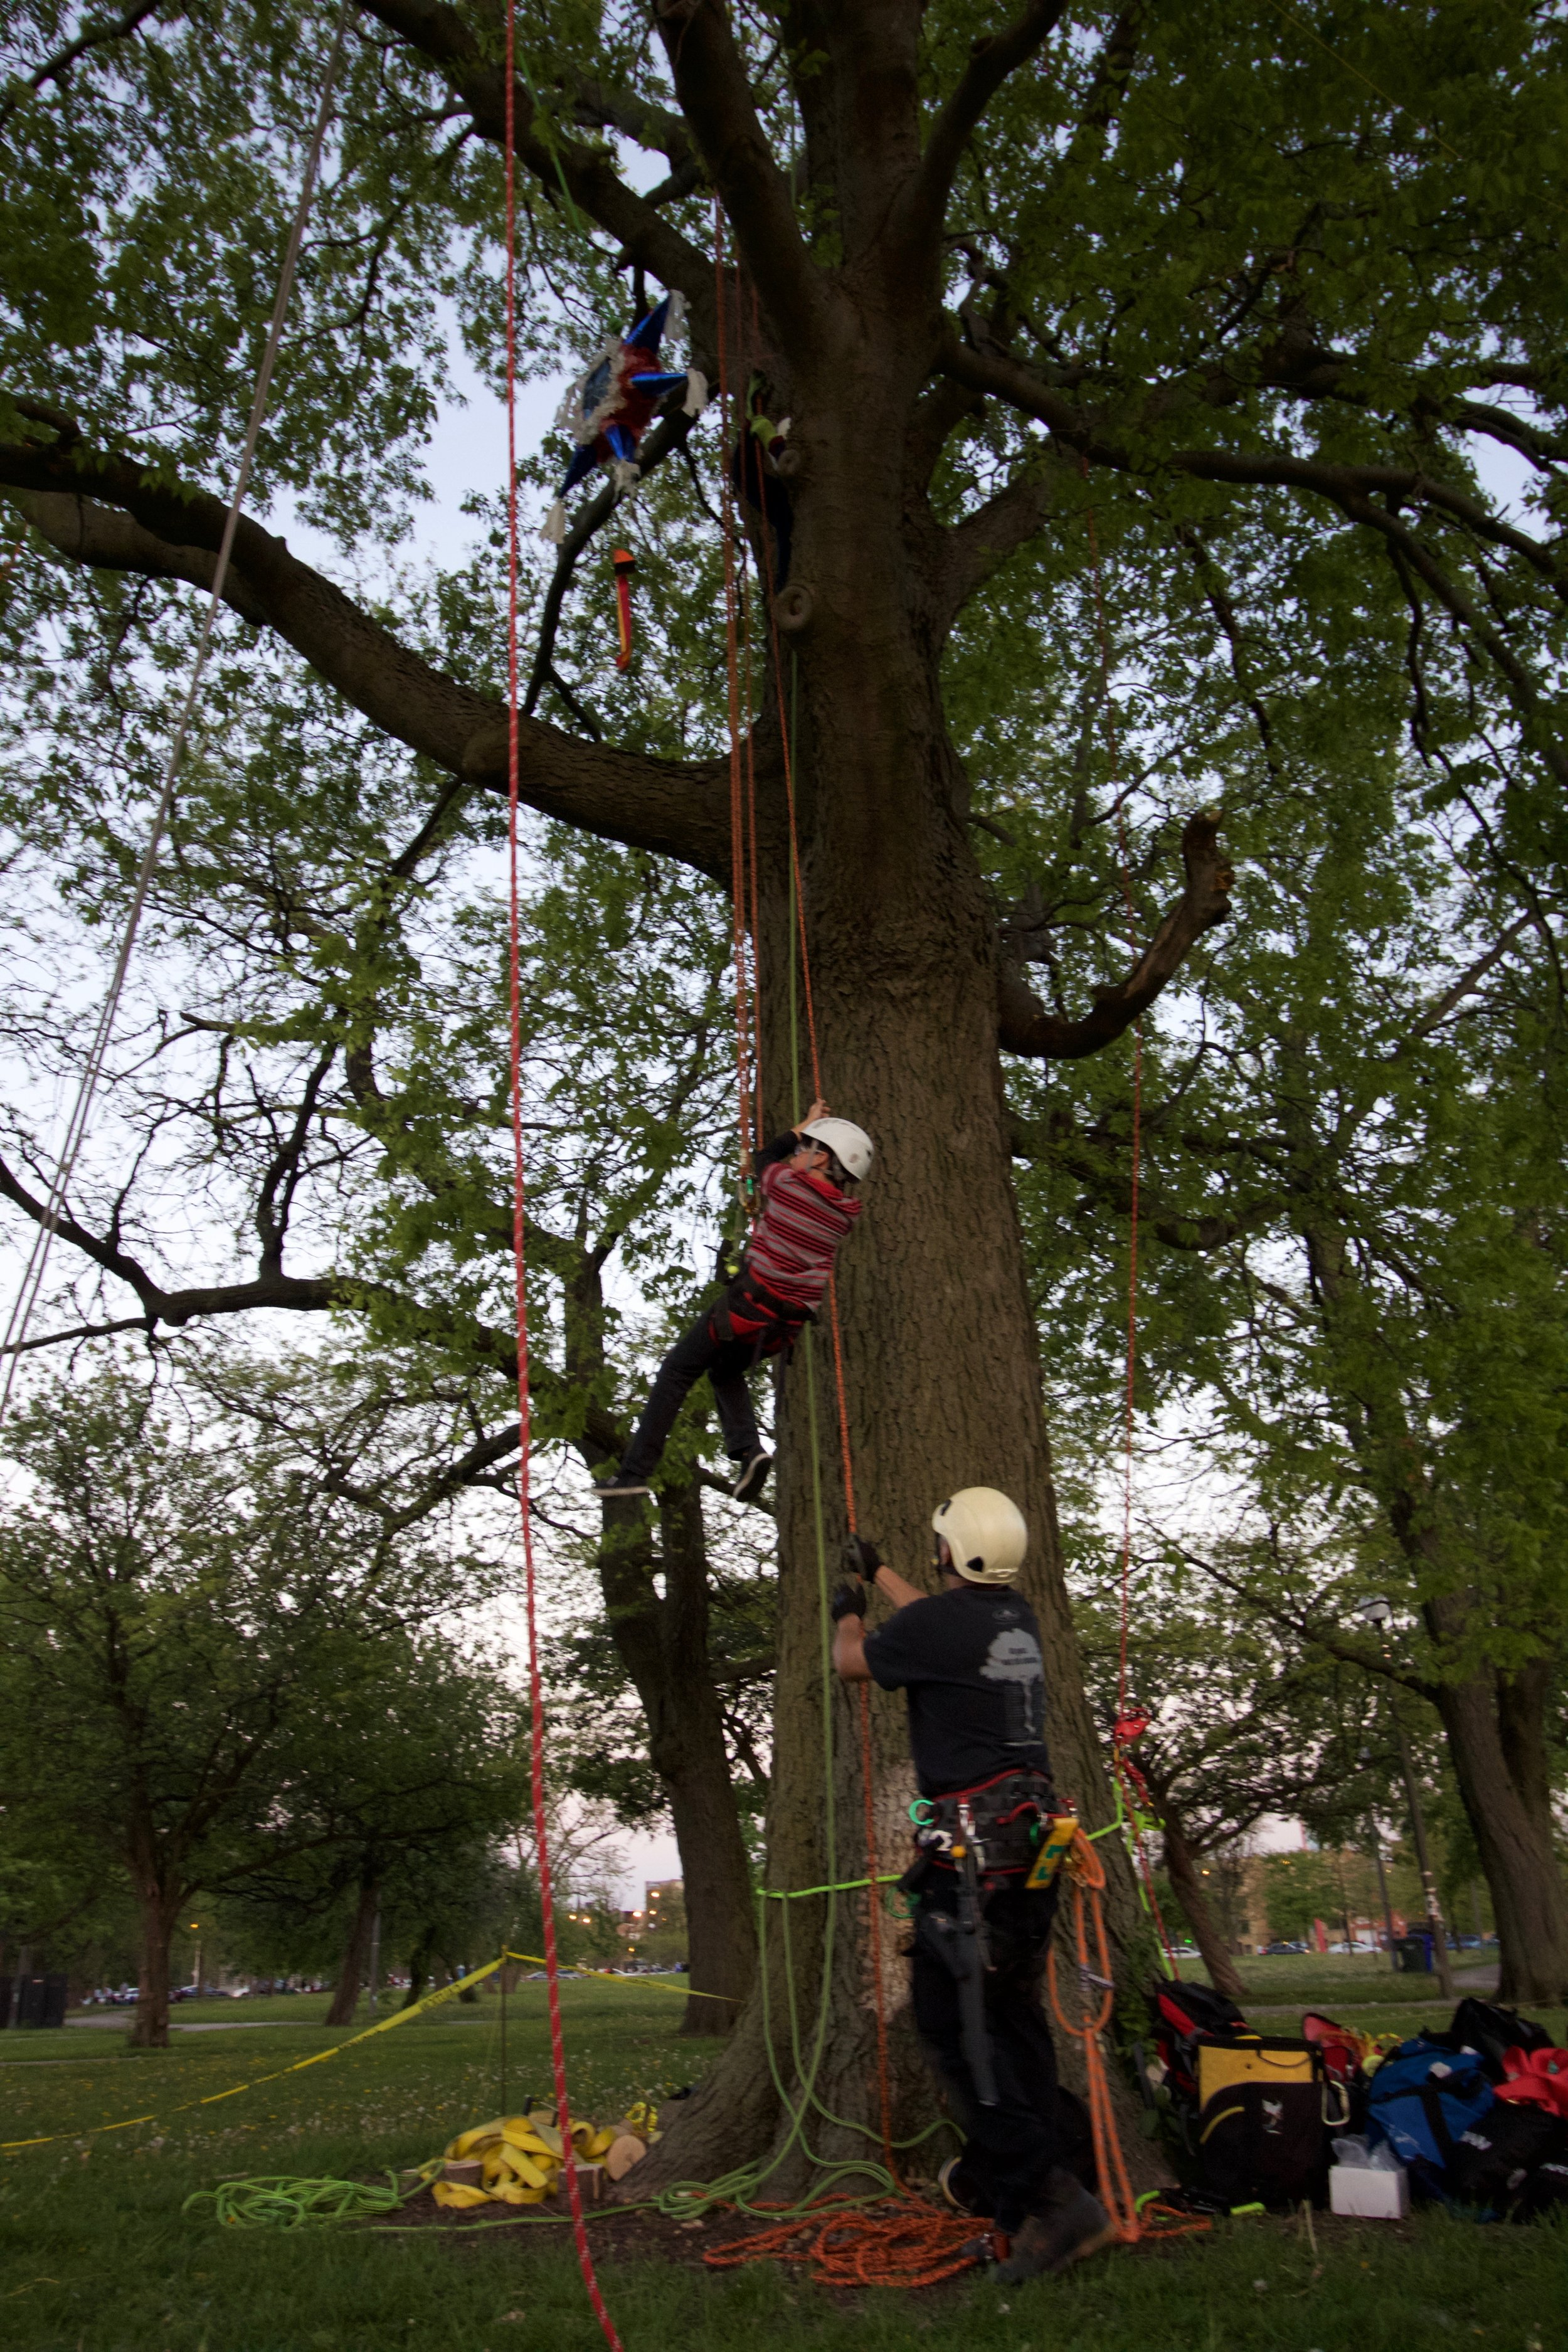 An event goer climbs a tree in Humboldt Park, May 2017